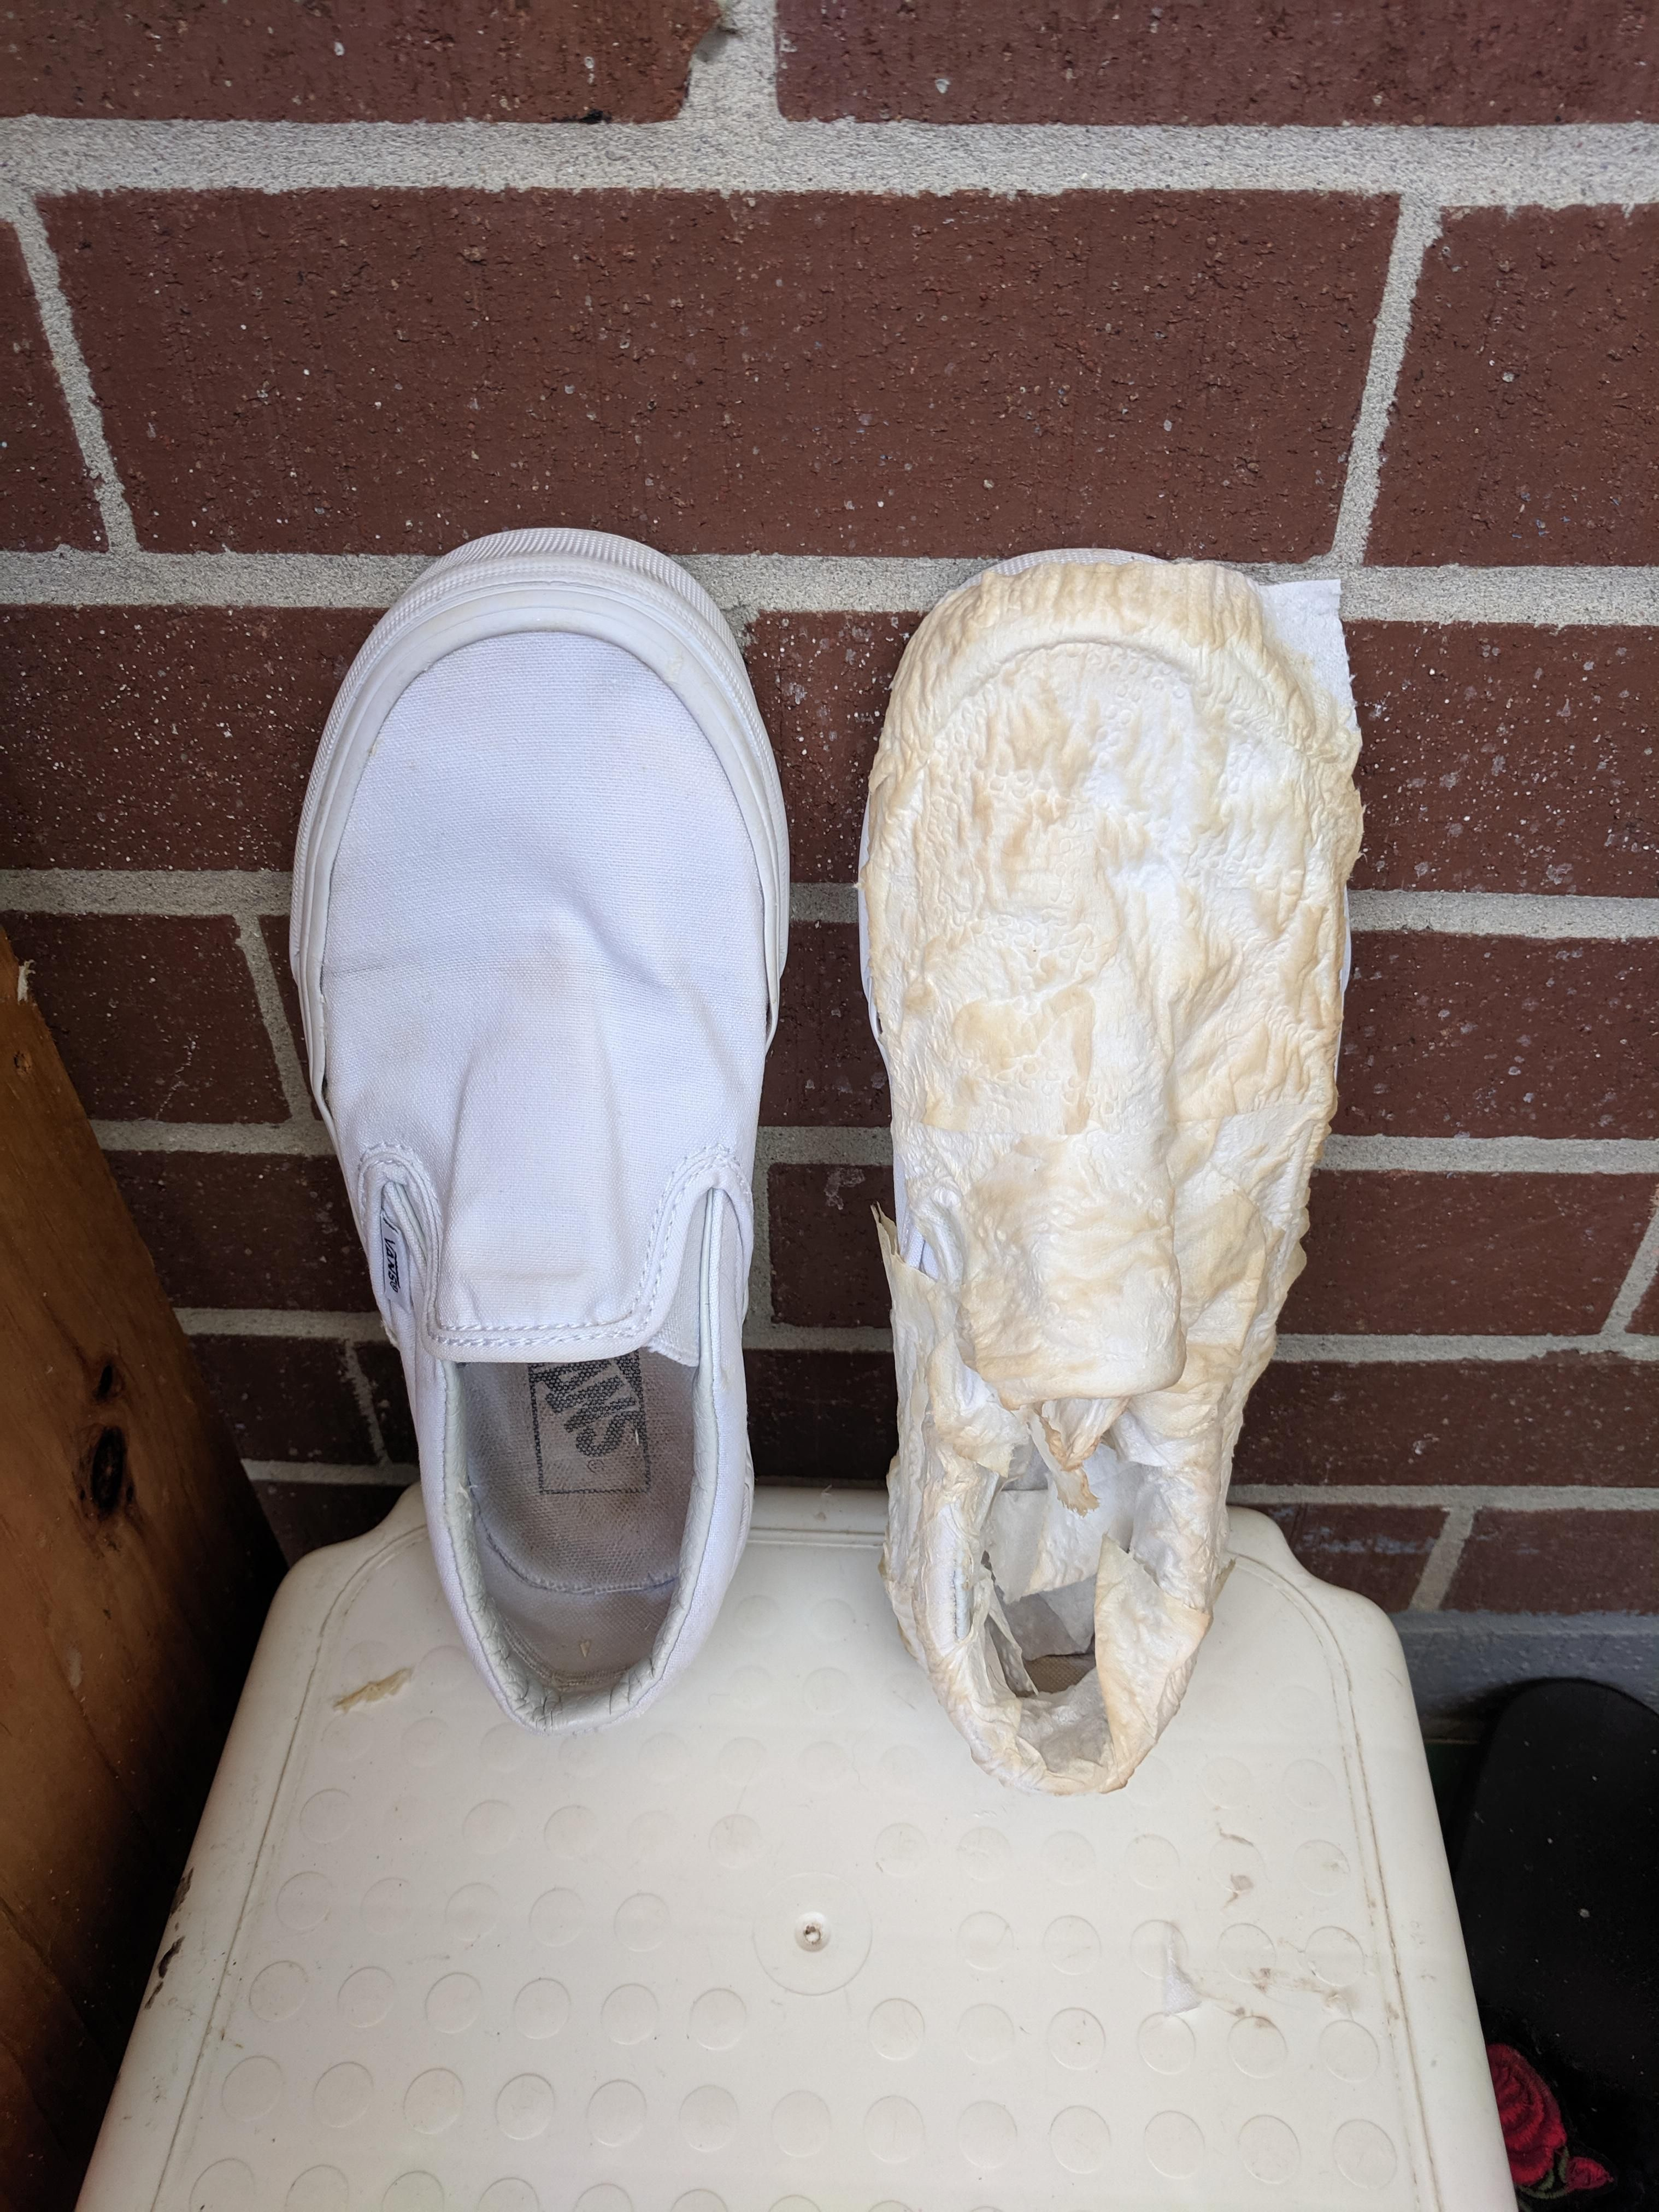 cover your white shoes in toilet paper